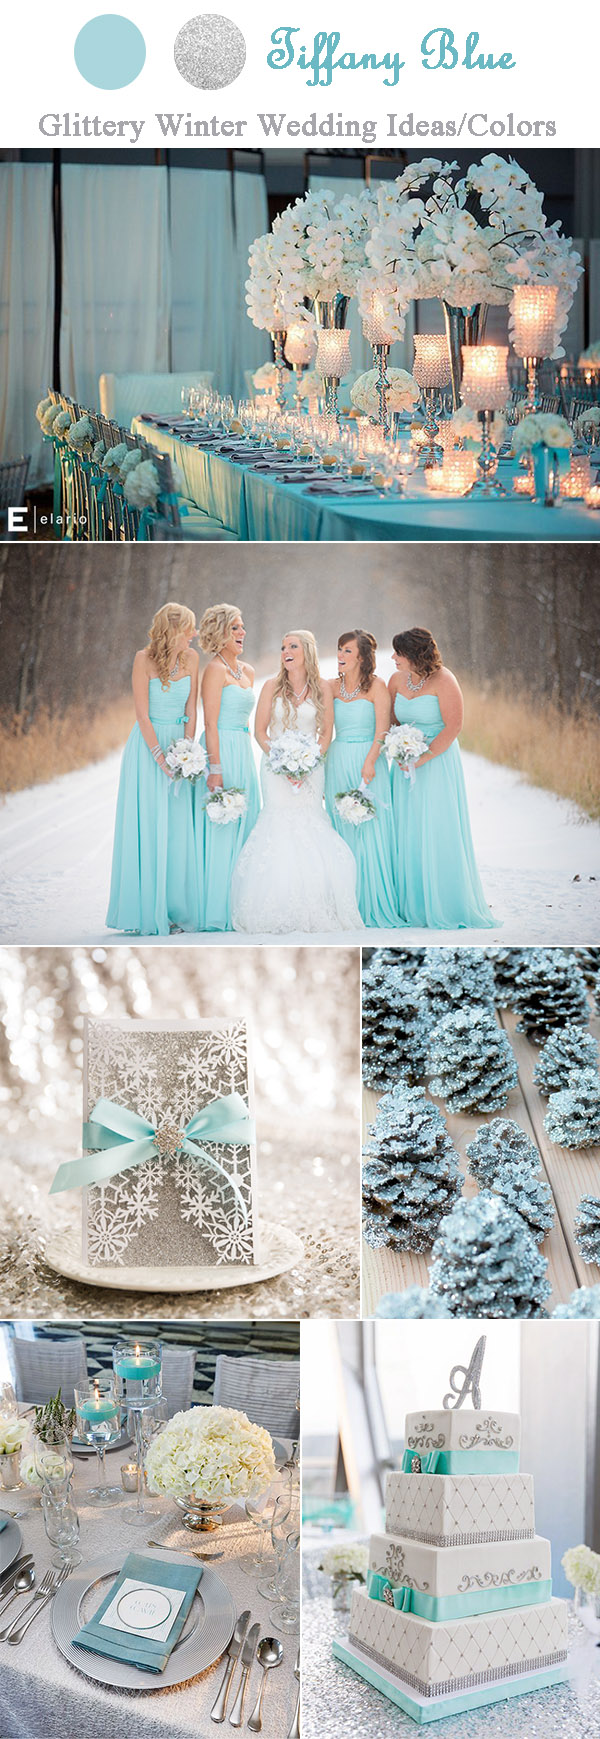 The Perfect Glitter and Sparkle Winter Wedding Ideas by Color and Theme